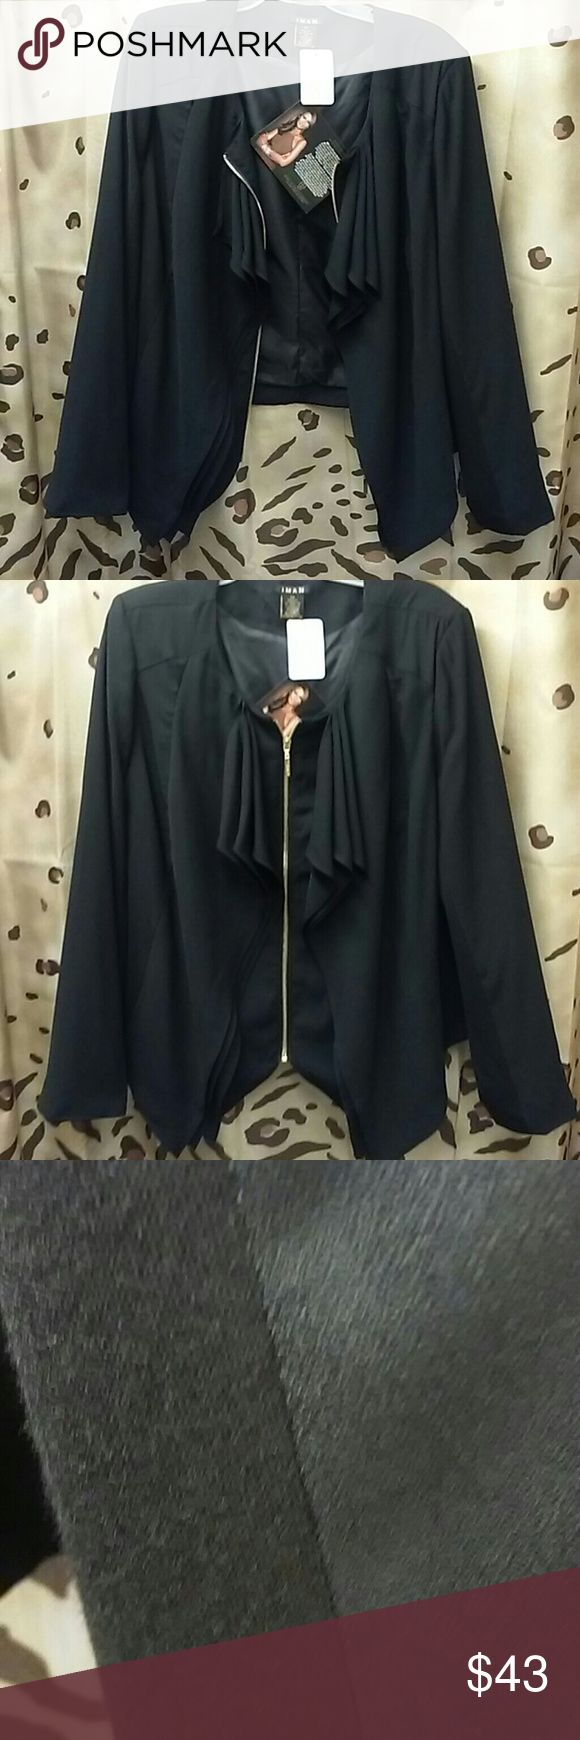 Iman ruffle front waist length jacket zip up Has differentiating material on sides of sleeves and body of jacket pic 3 Size 2xl Material posted Gold zip up Lined $ 69.95 nwt Machine wash Zip ruffle front iman Jackets & Coats Blazers